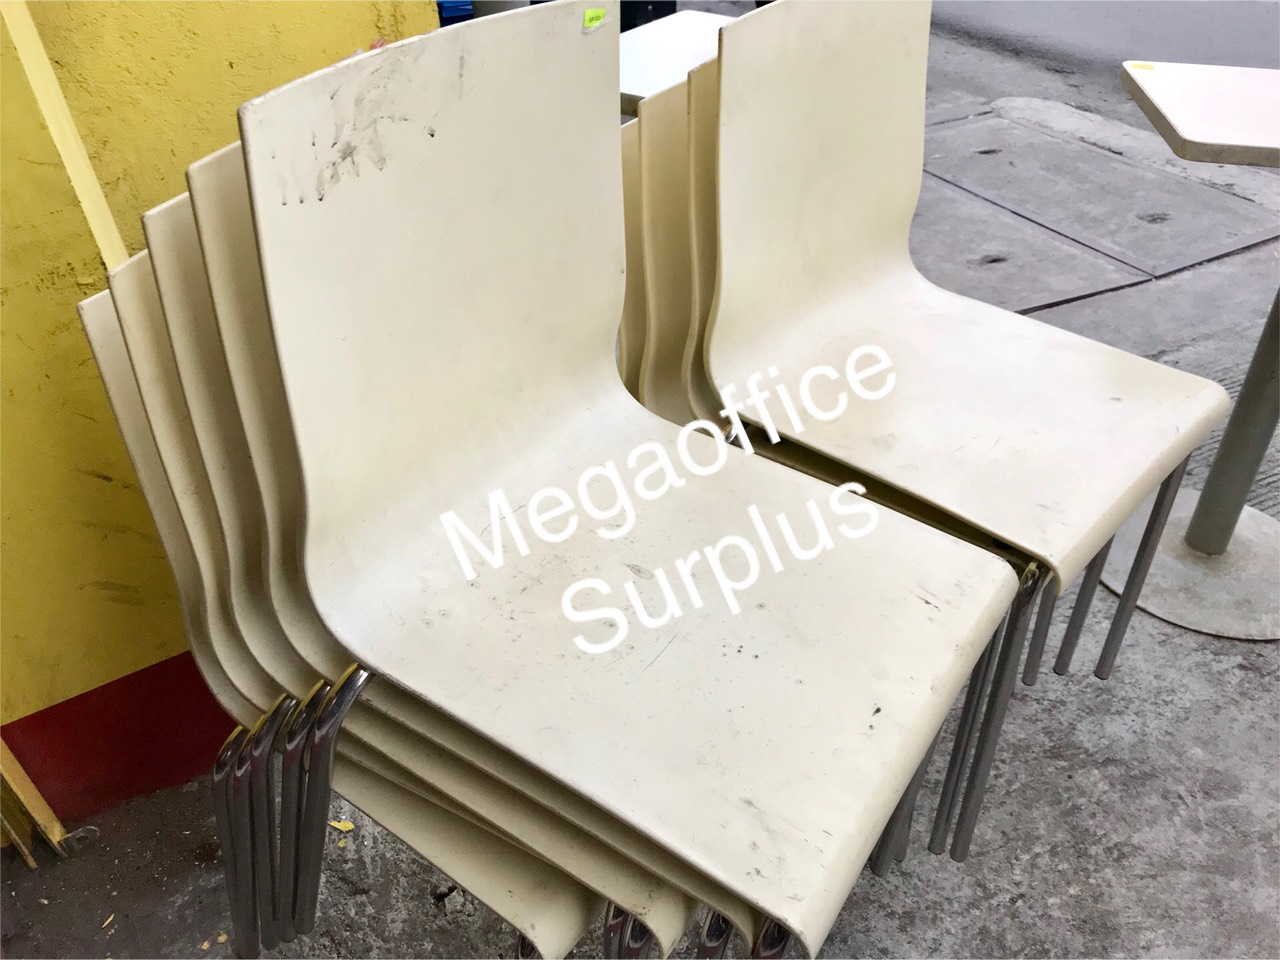 Fast Food Chain Chair Megaoffice